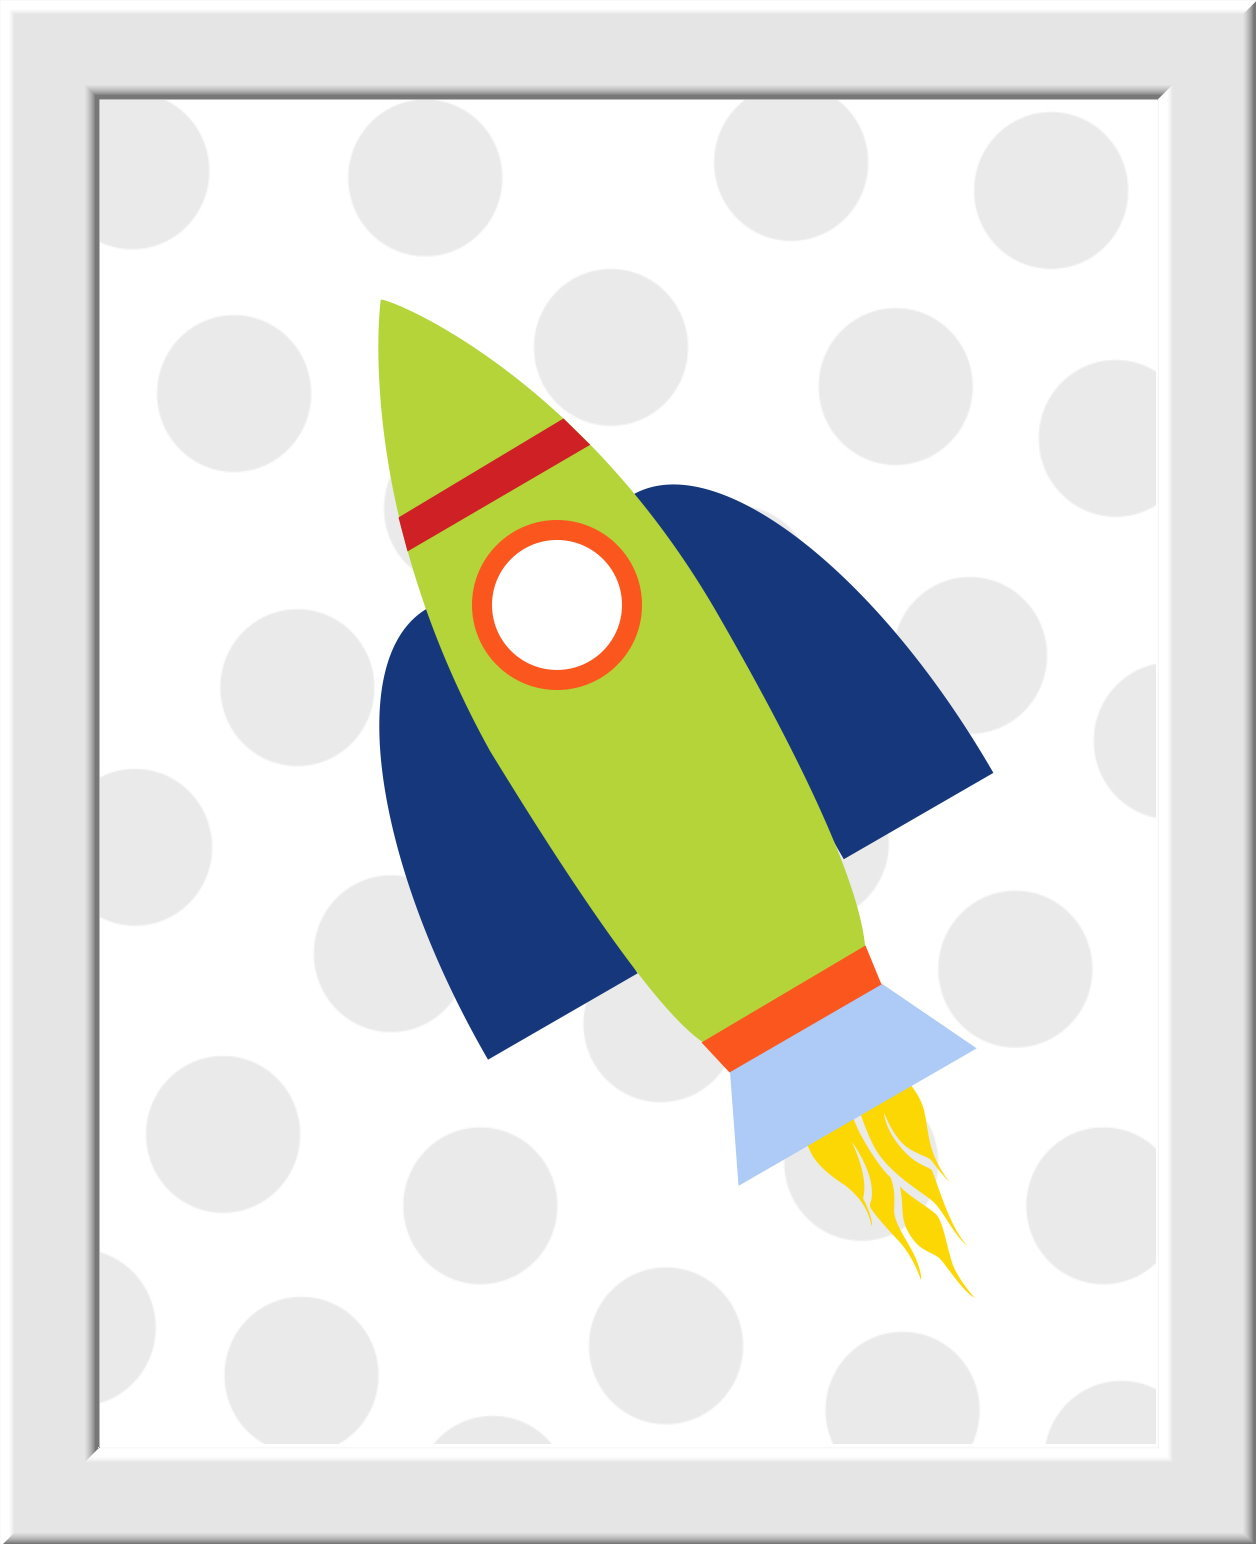 Baby Nursery Wall Art - Shoot For The Moon - Spaceships - Set of 3 - Green Blue Red - Transportation - Boys